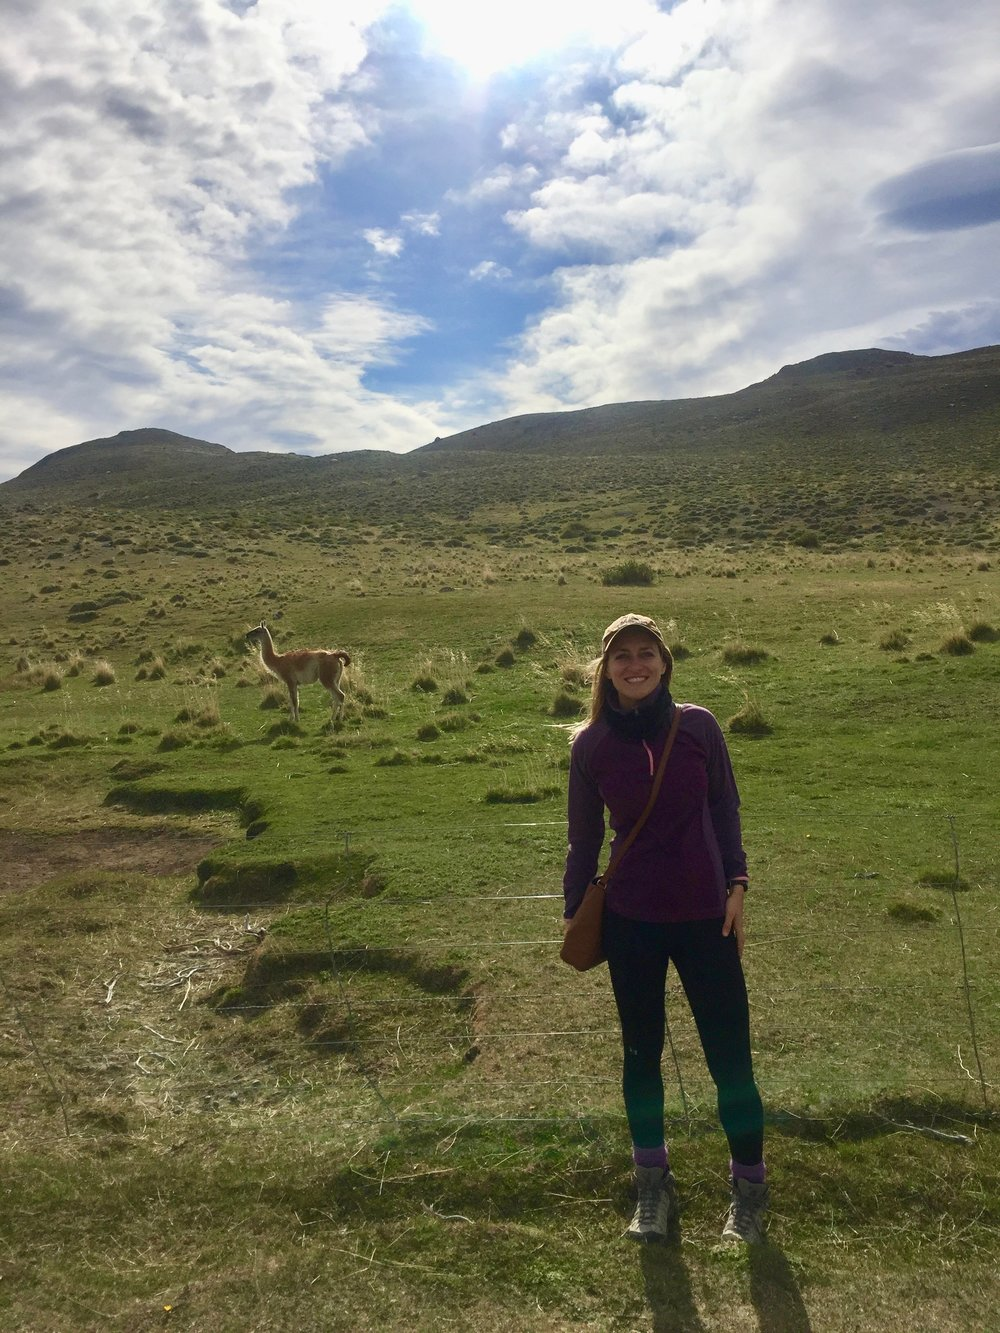 Took the opportunity to photobomb a guanaco before leaving Chile.